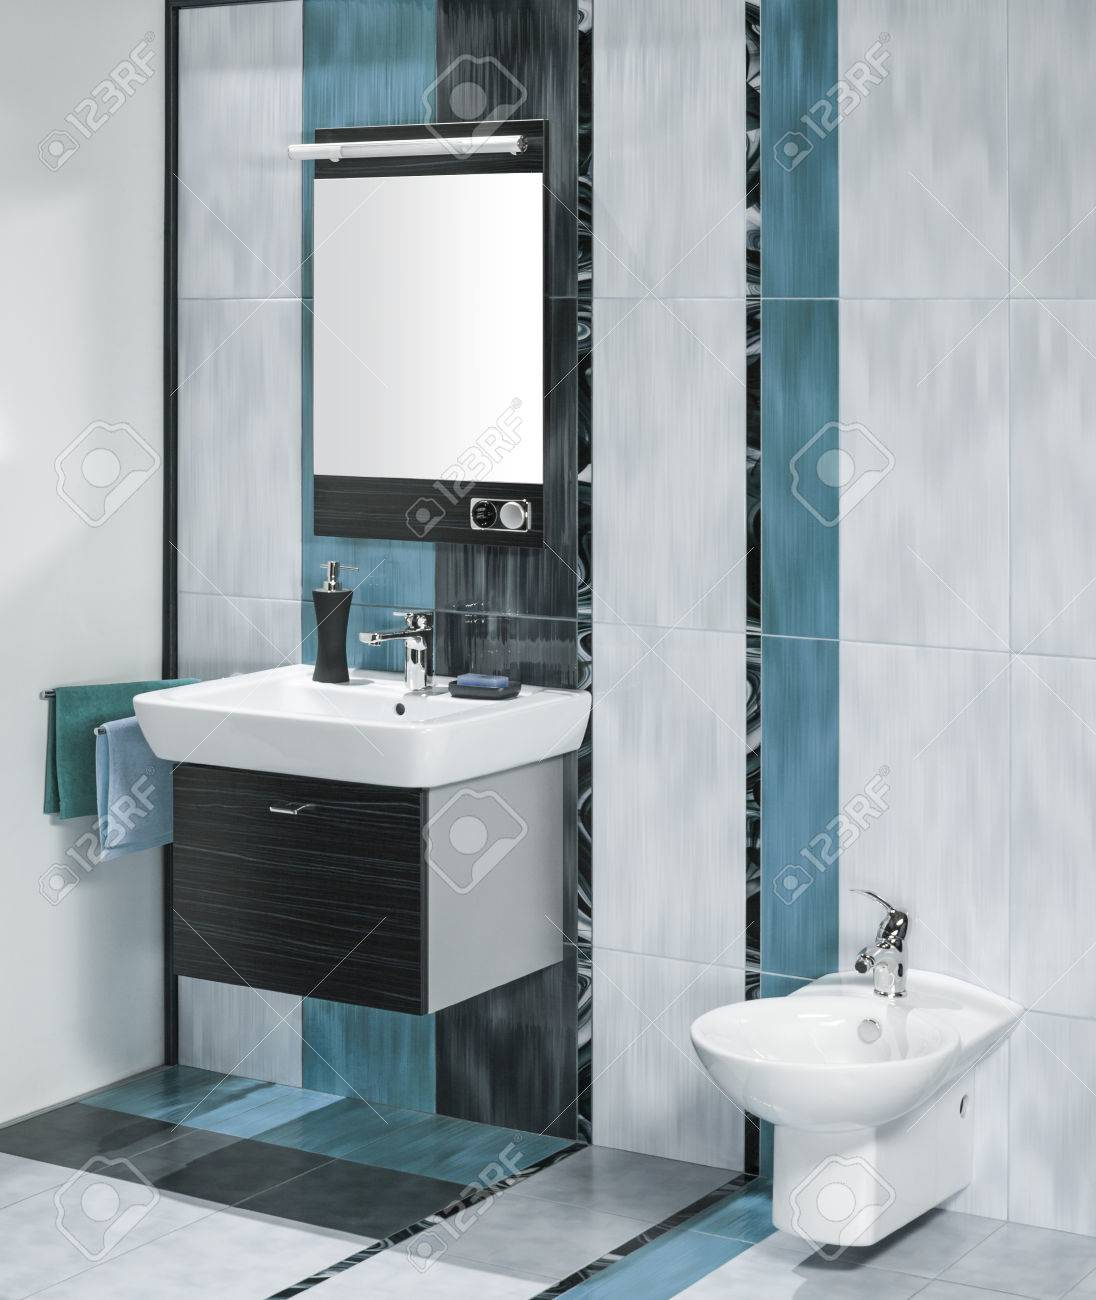 Detail Of A Luxurious Bathroom Interior With Miror And Sink With ...